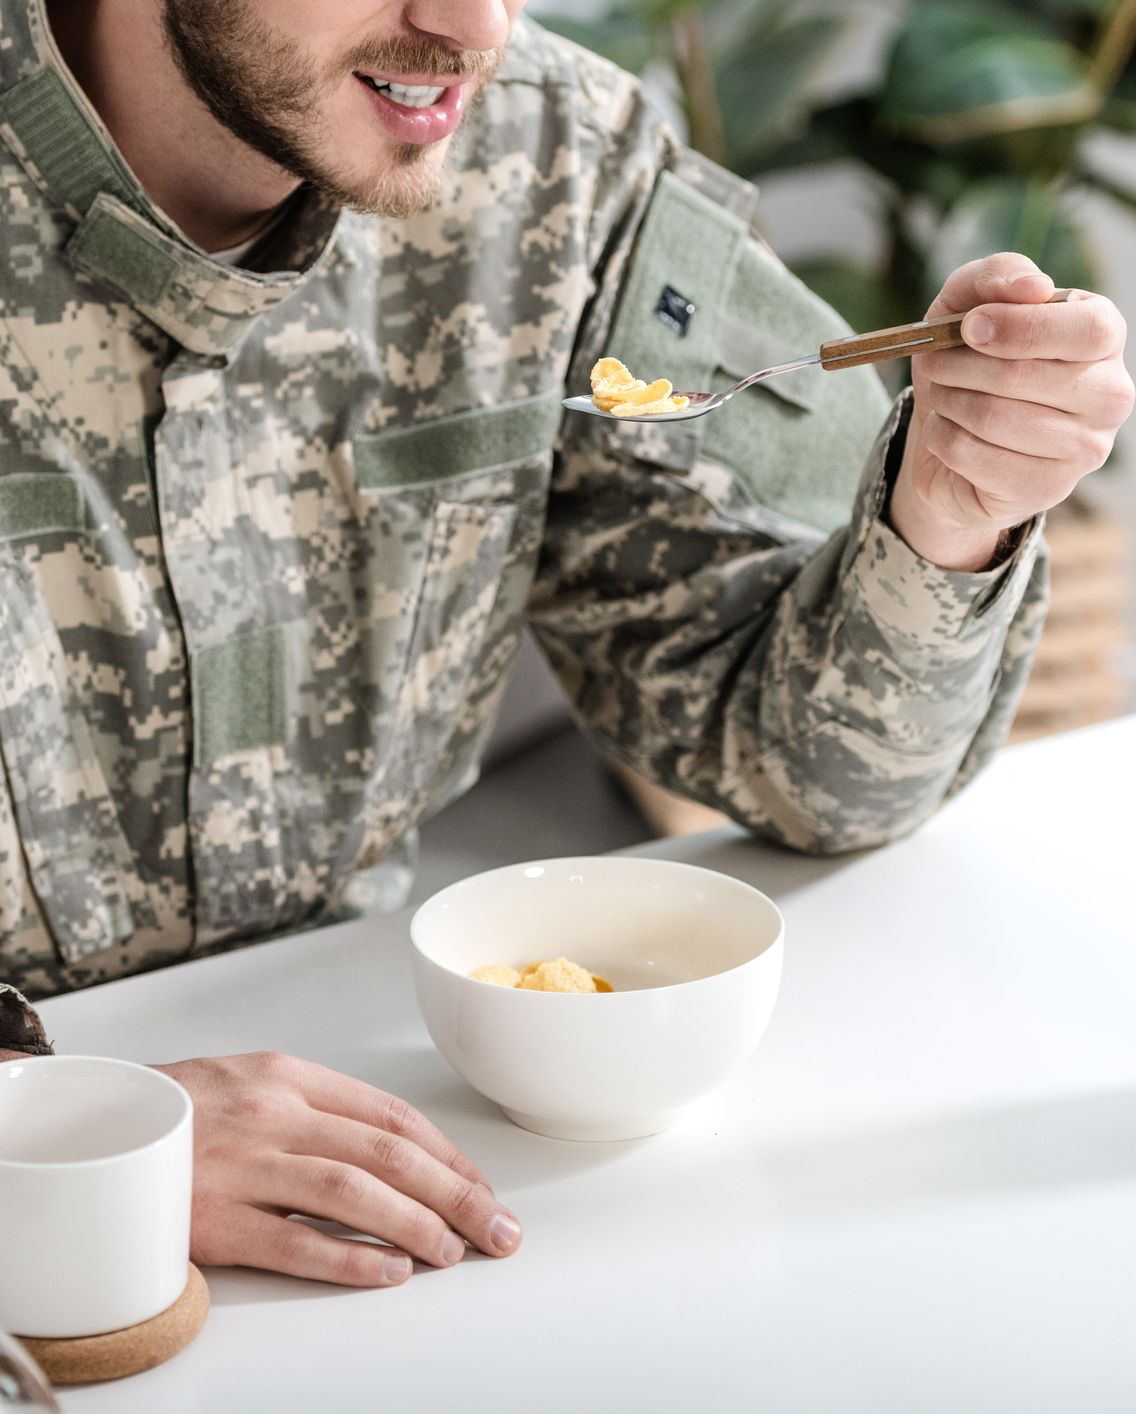 The 3-Day Military Diet Says You Can Lose Up To 10 Pounds In One Week